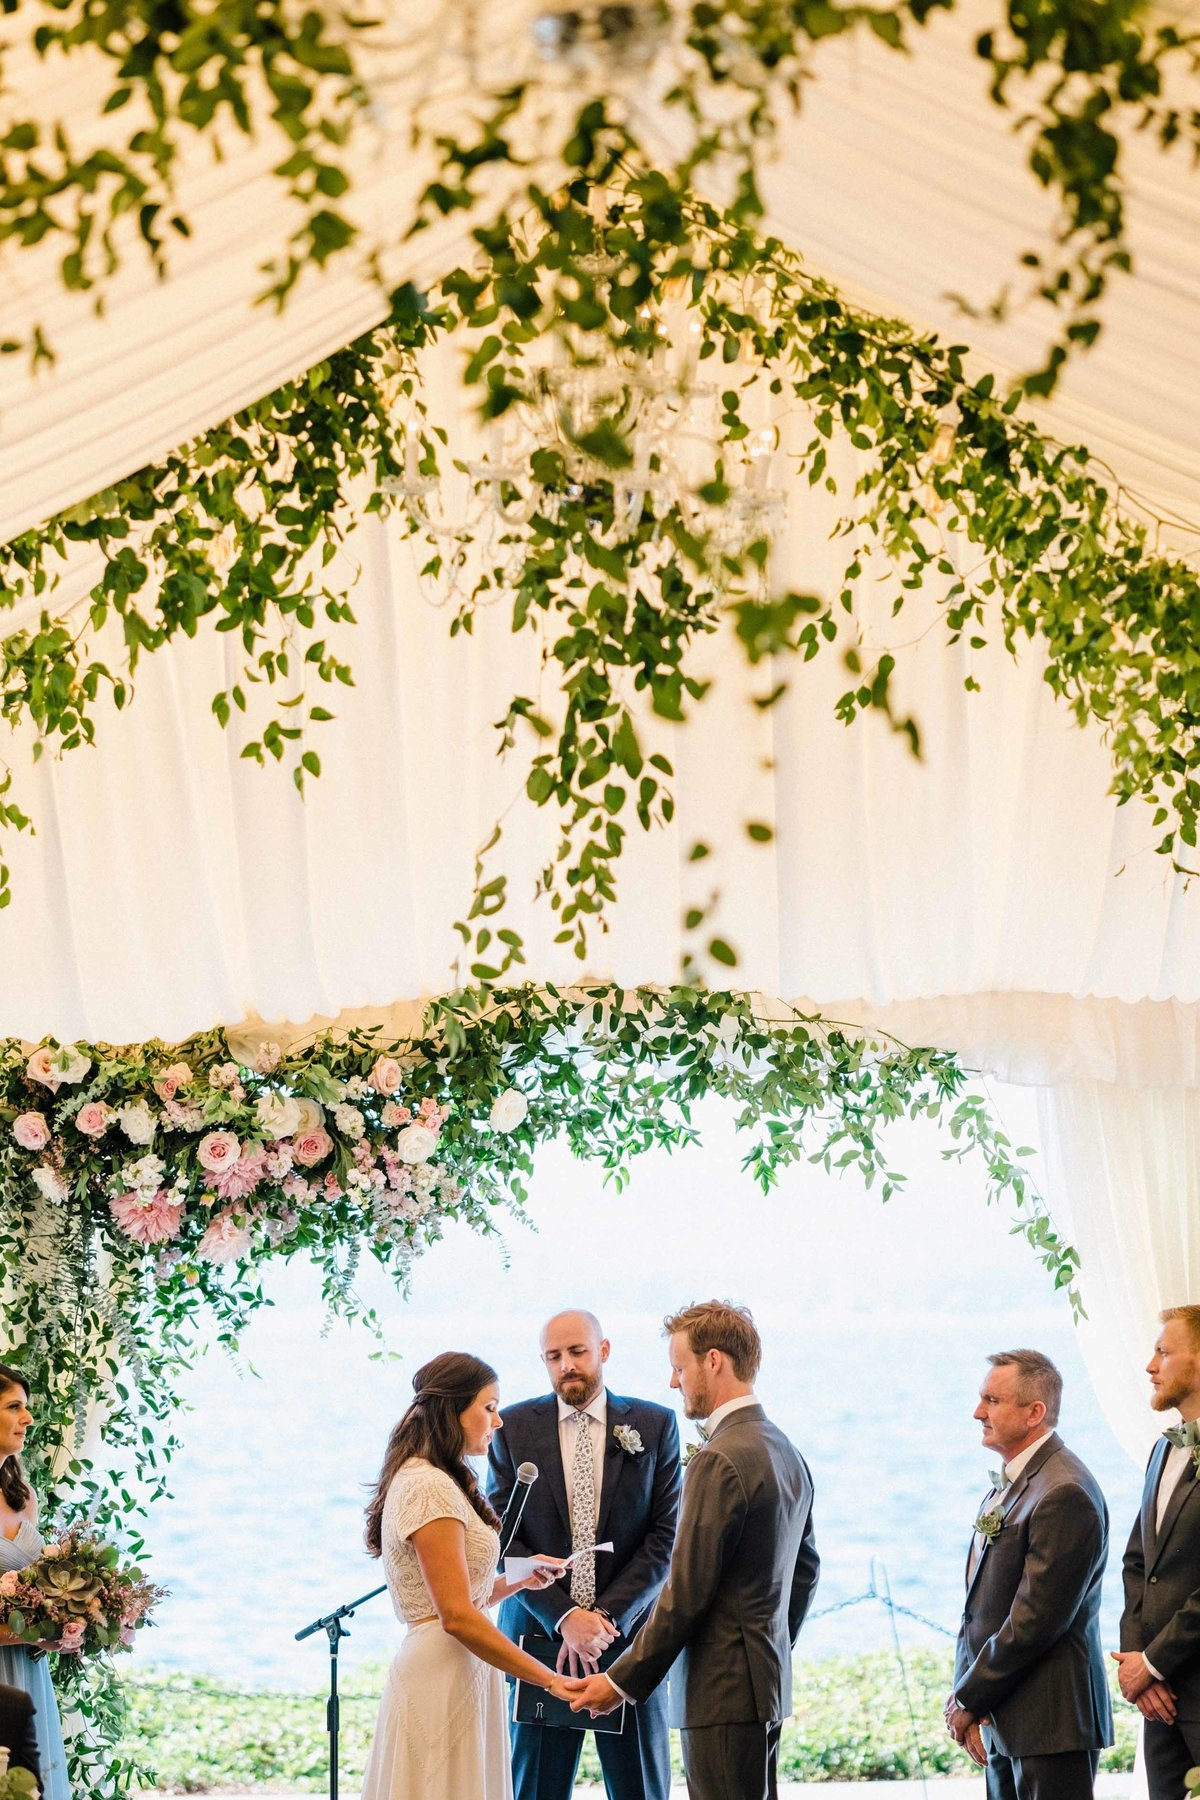 42greenery-summer-tent-wedding-flora-nova-design